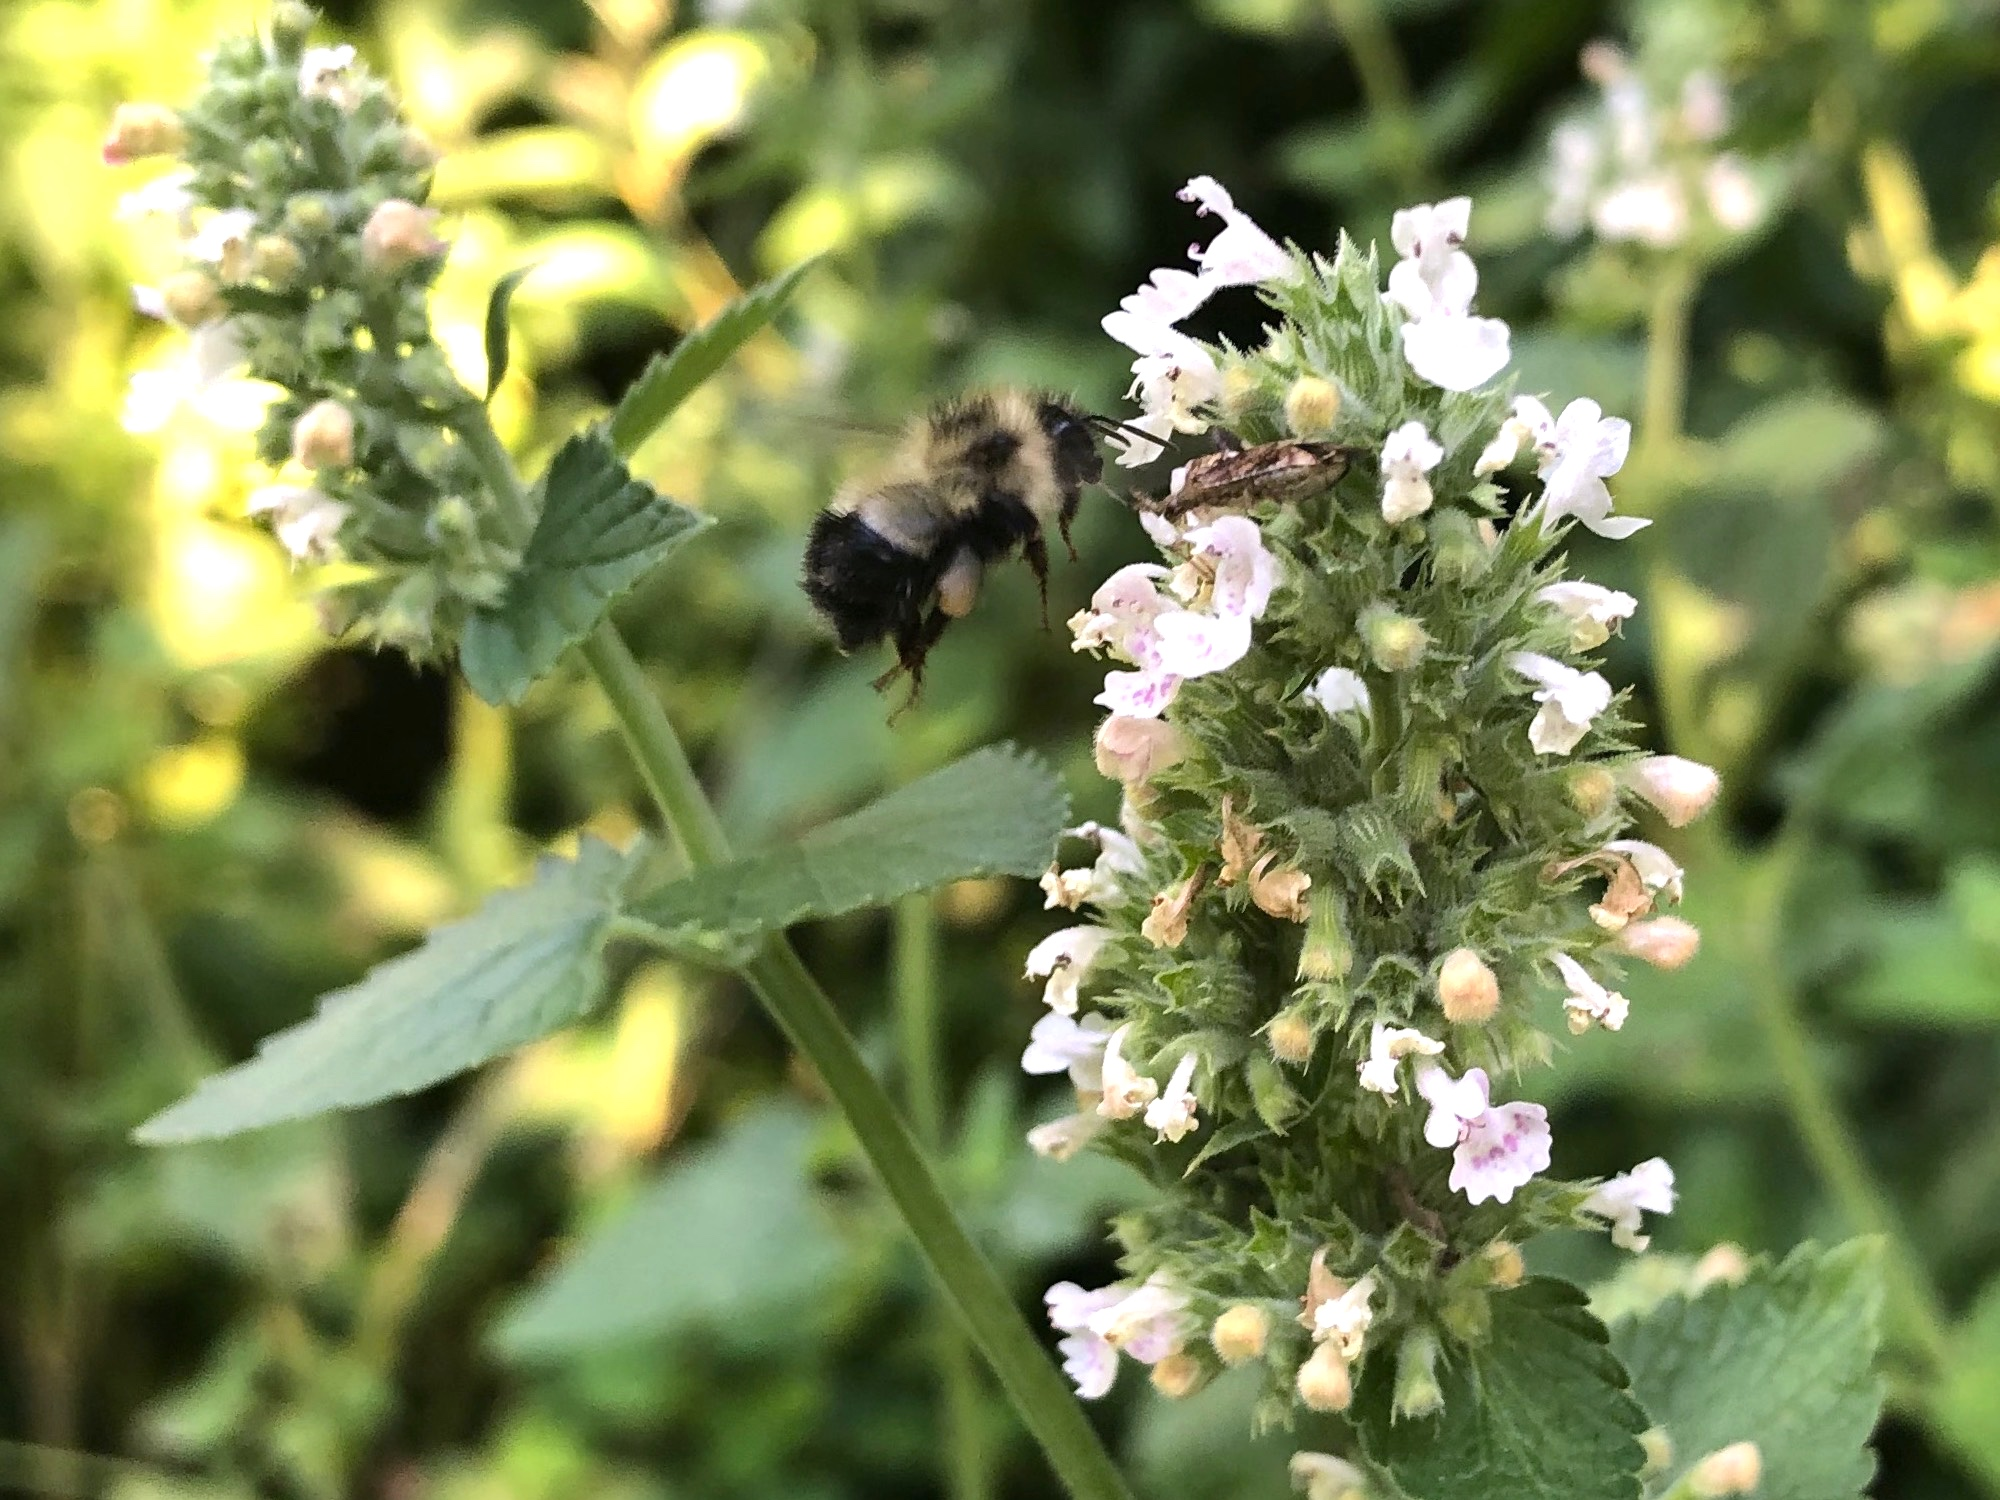 Bumblebee landing on Wild Catnip on July 19, 2020.